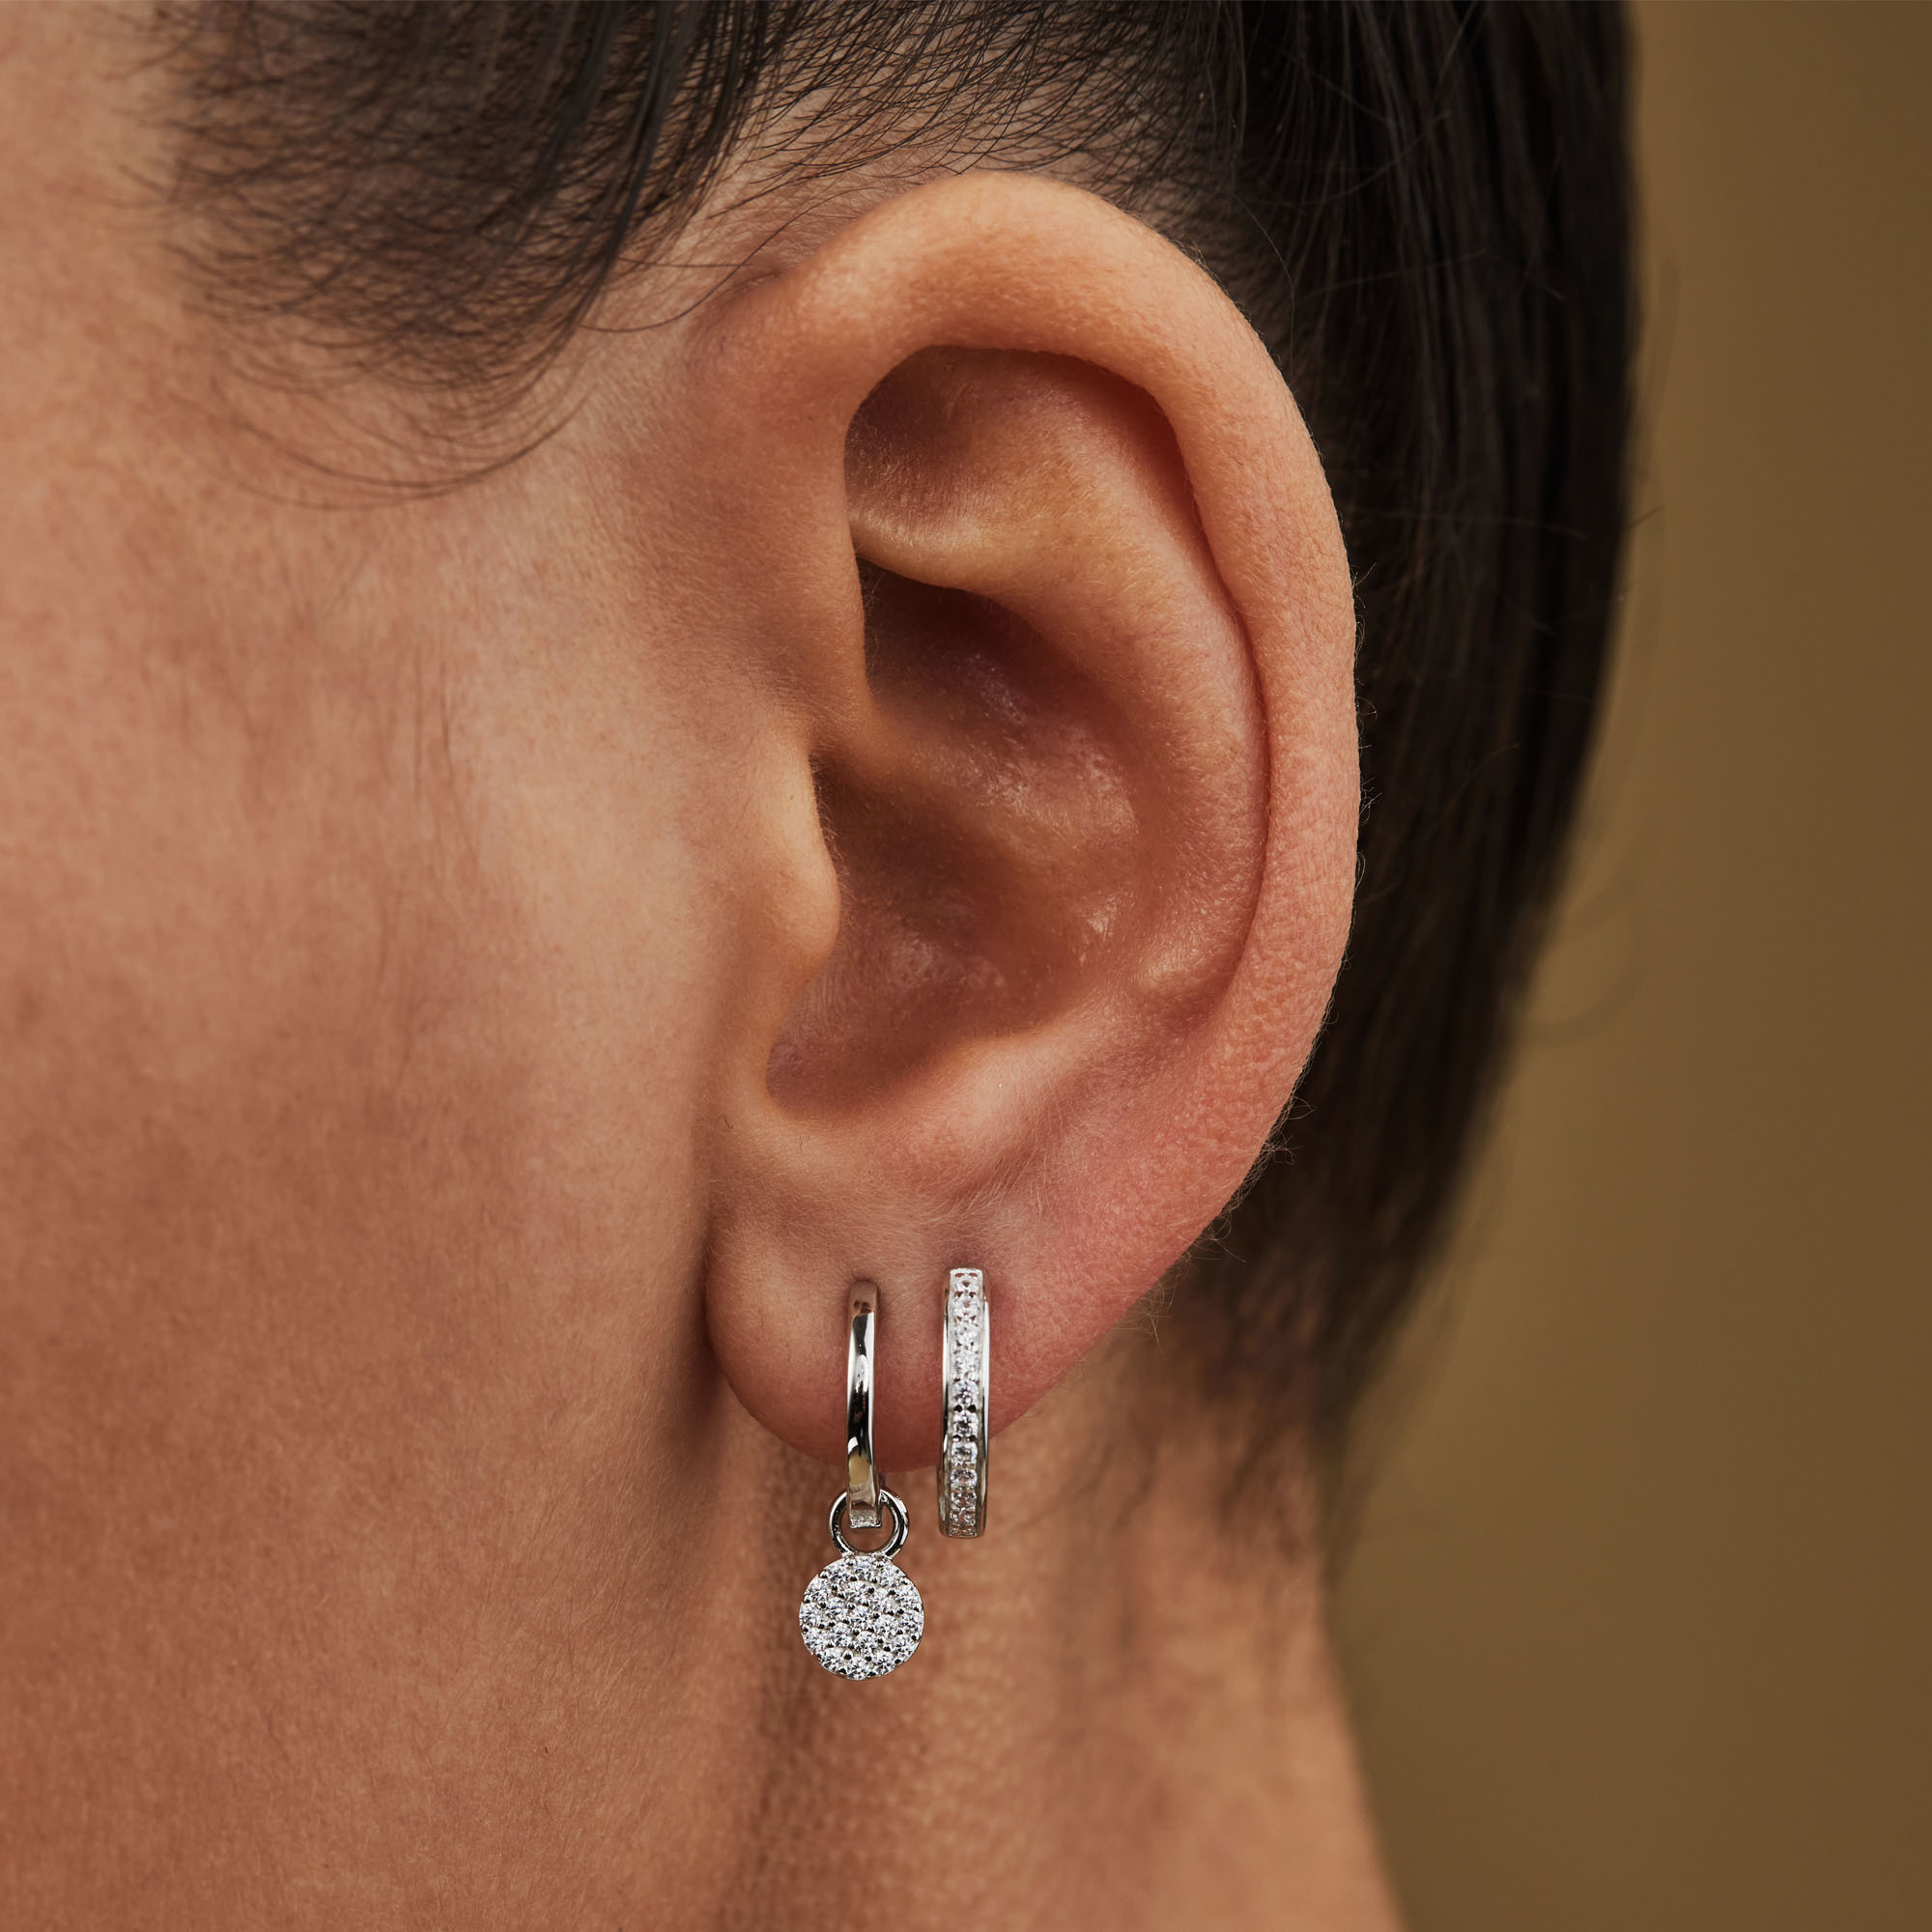 Selected Jewels Mila Elodie 925 sterling silver creoles with zirconia